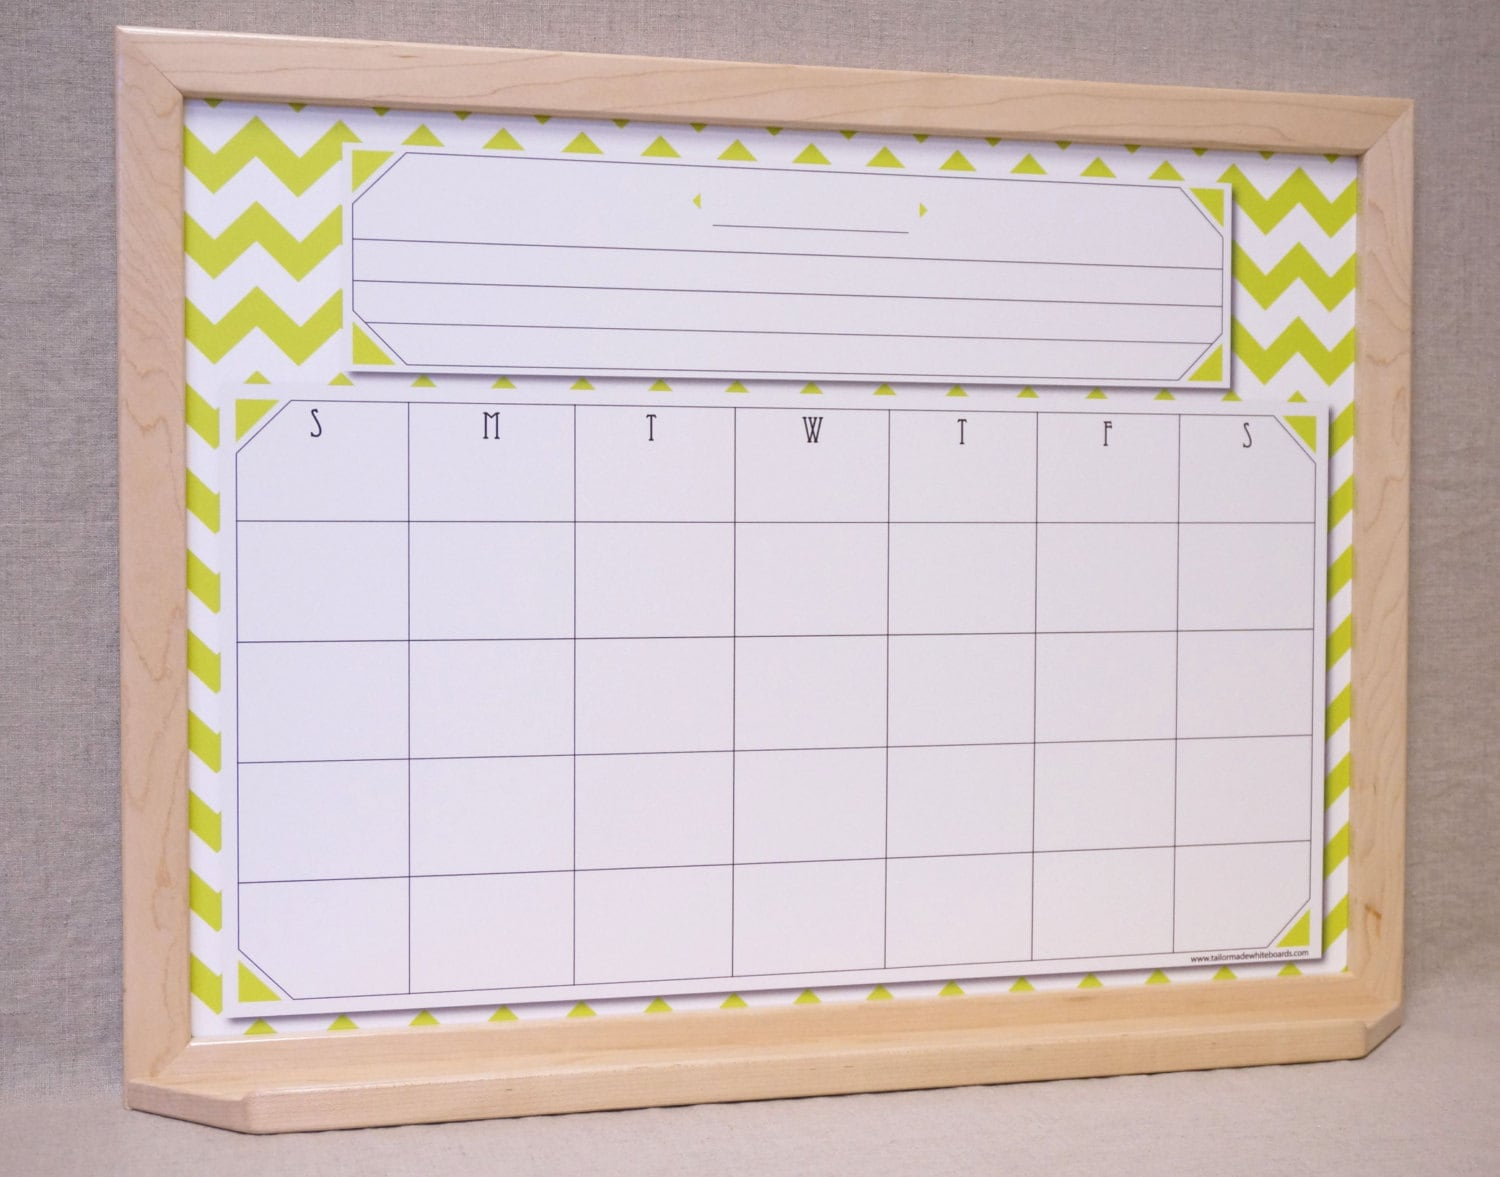 Framed Wall Calendar framed whiteboard calendar chartreuse/white chevron framed